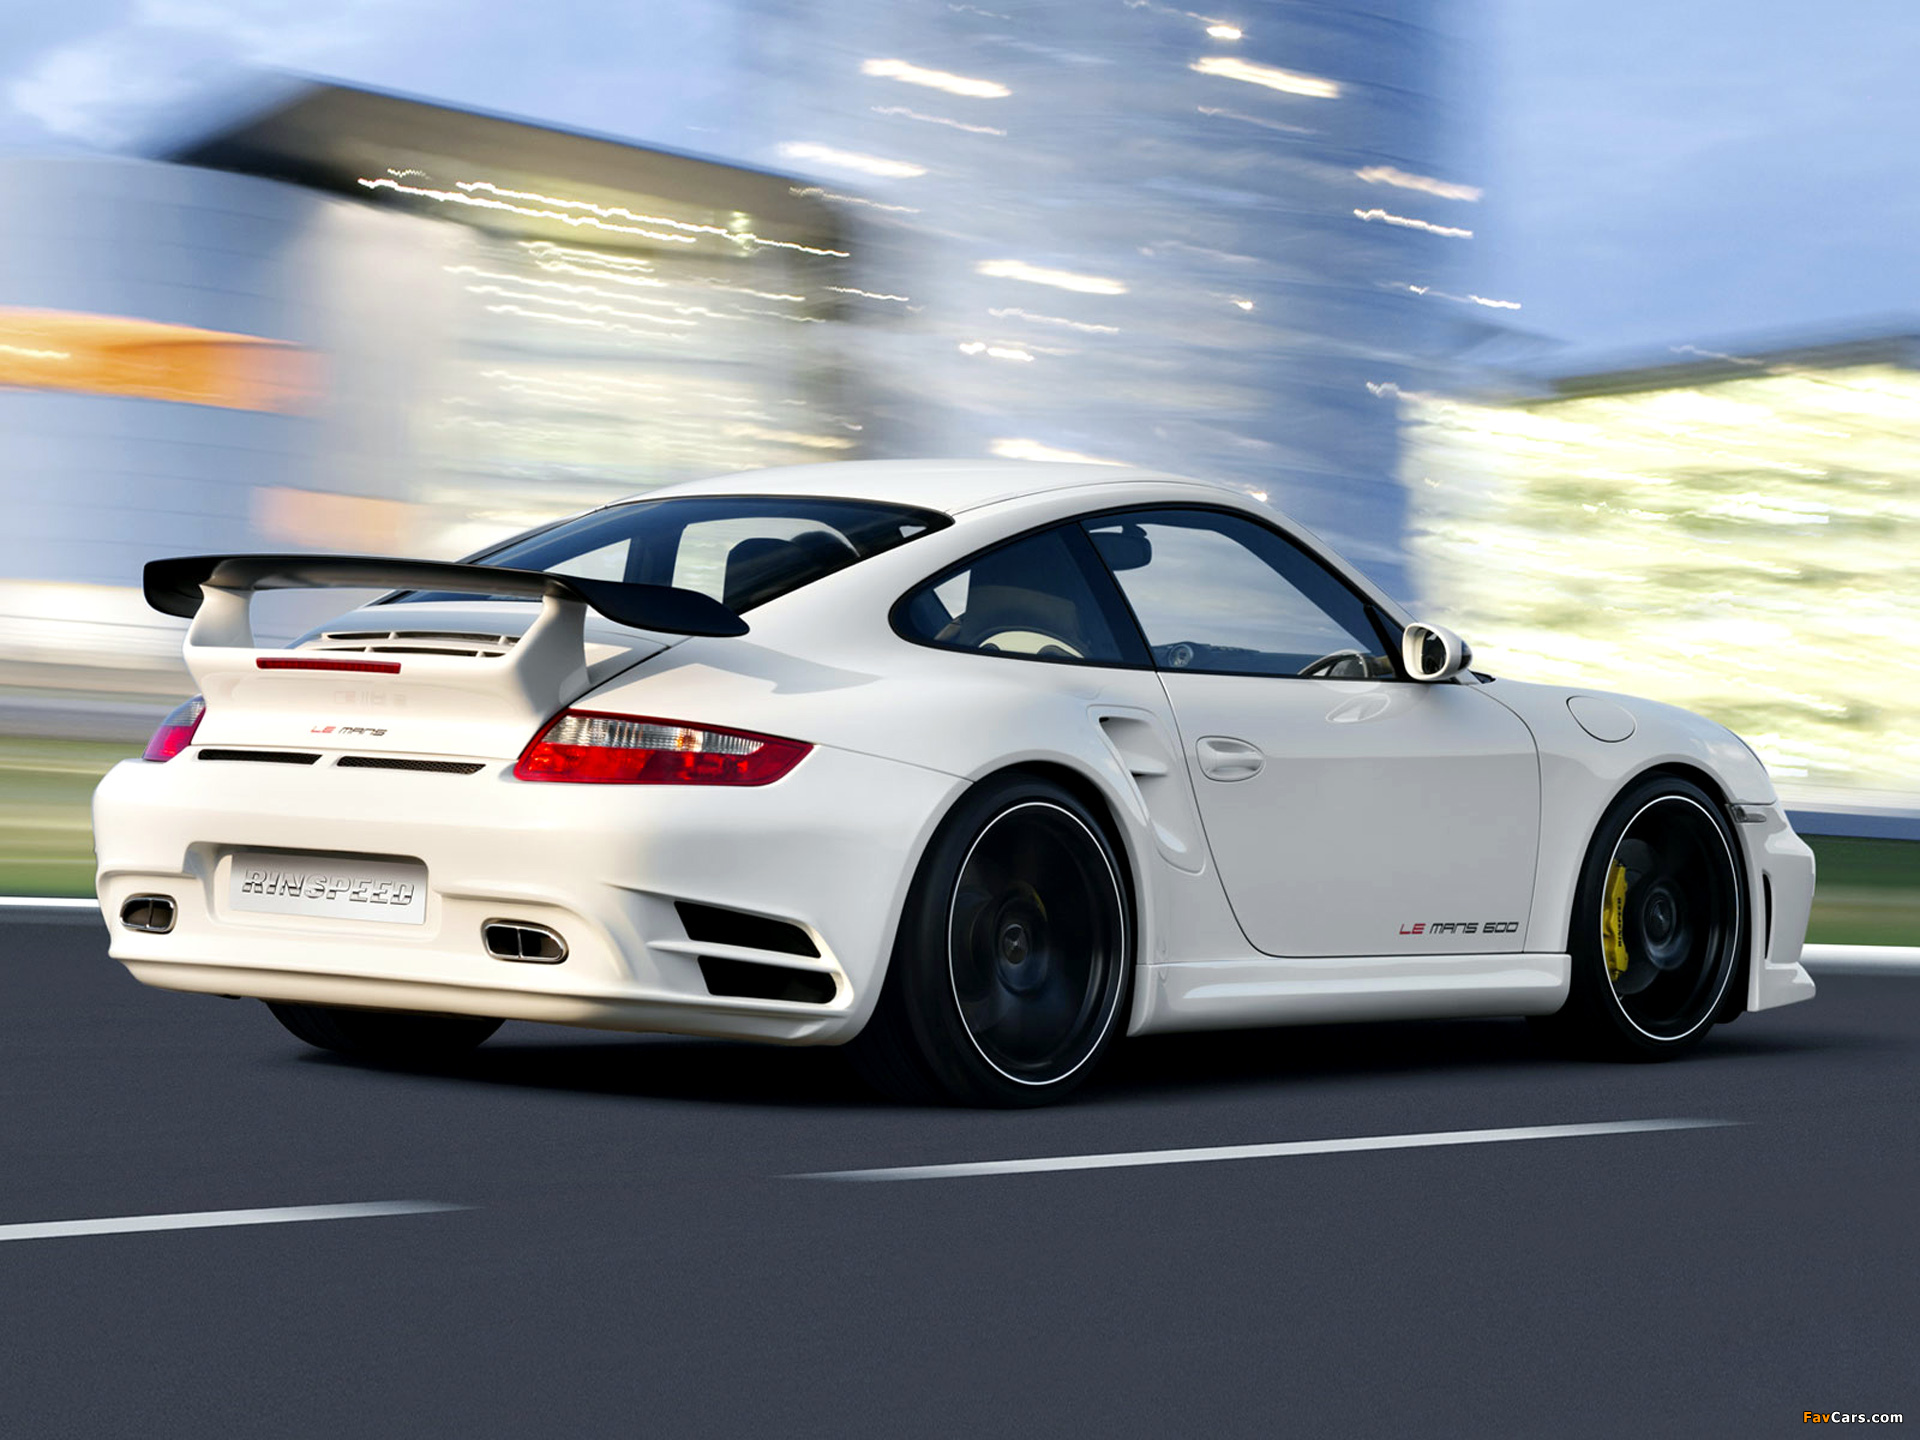 Rinspeed LeMans based on Porsche 911 Turbo (997) 2007 pictures (1920 x 1440)